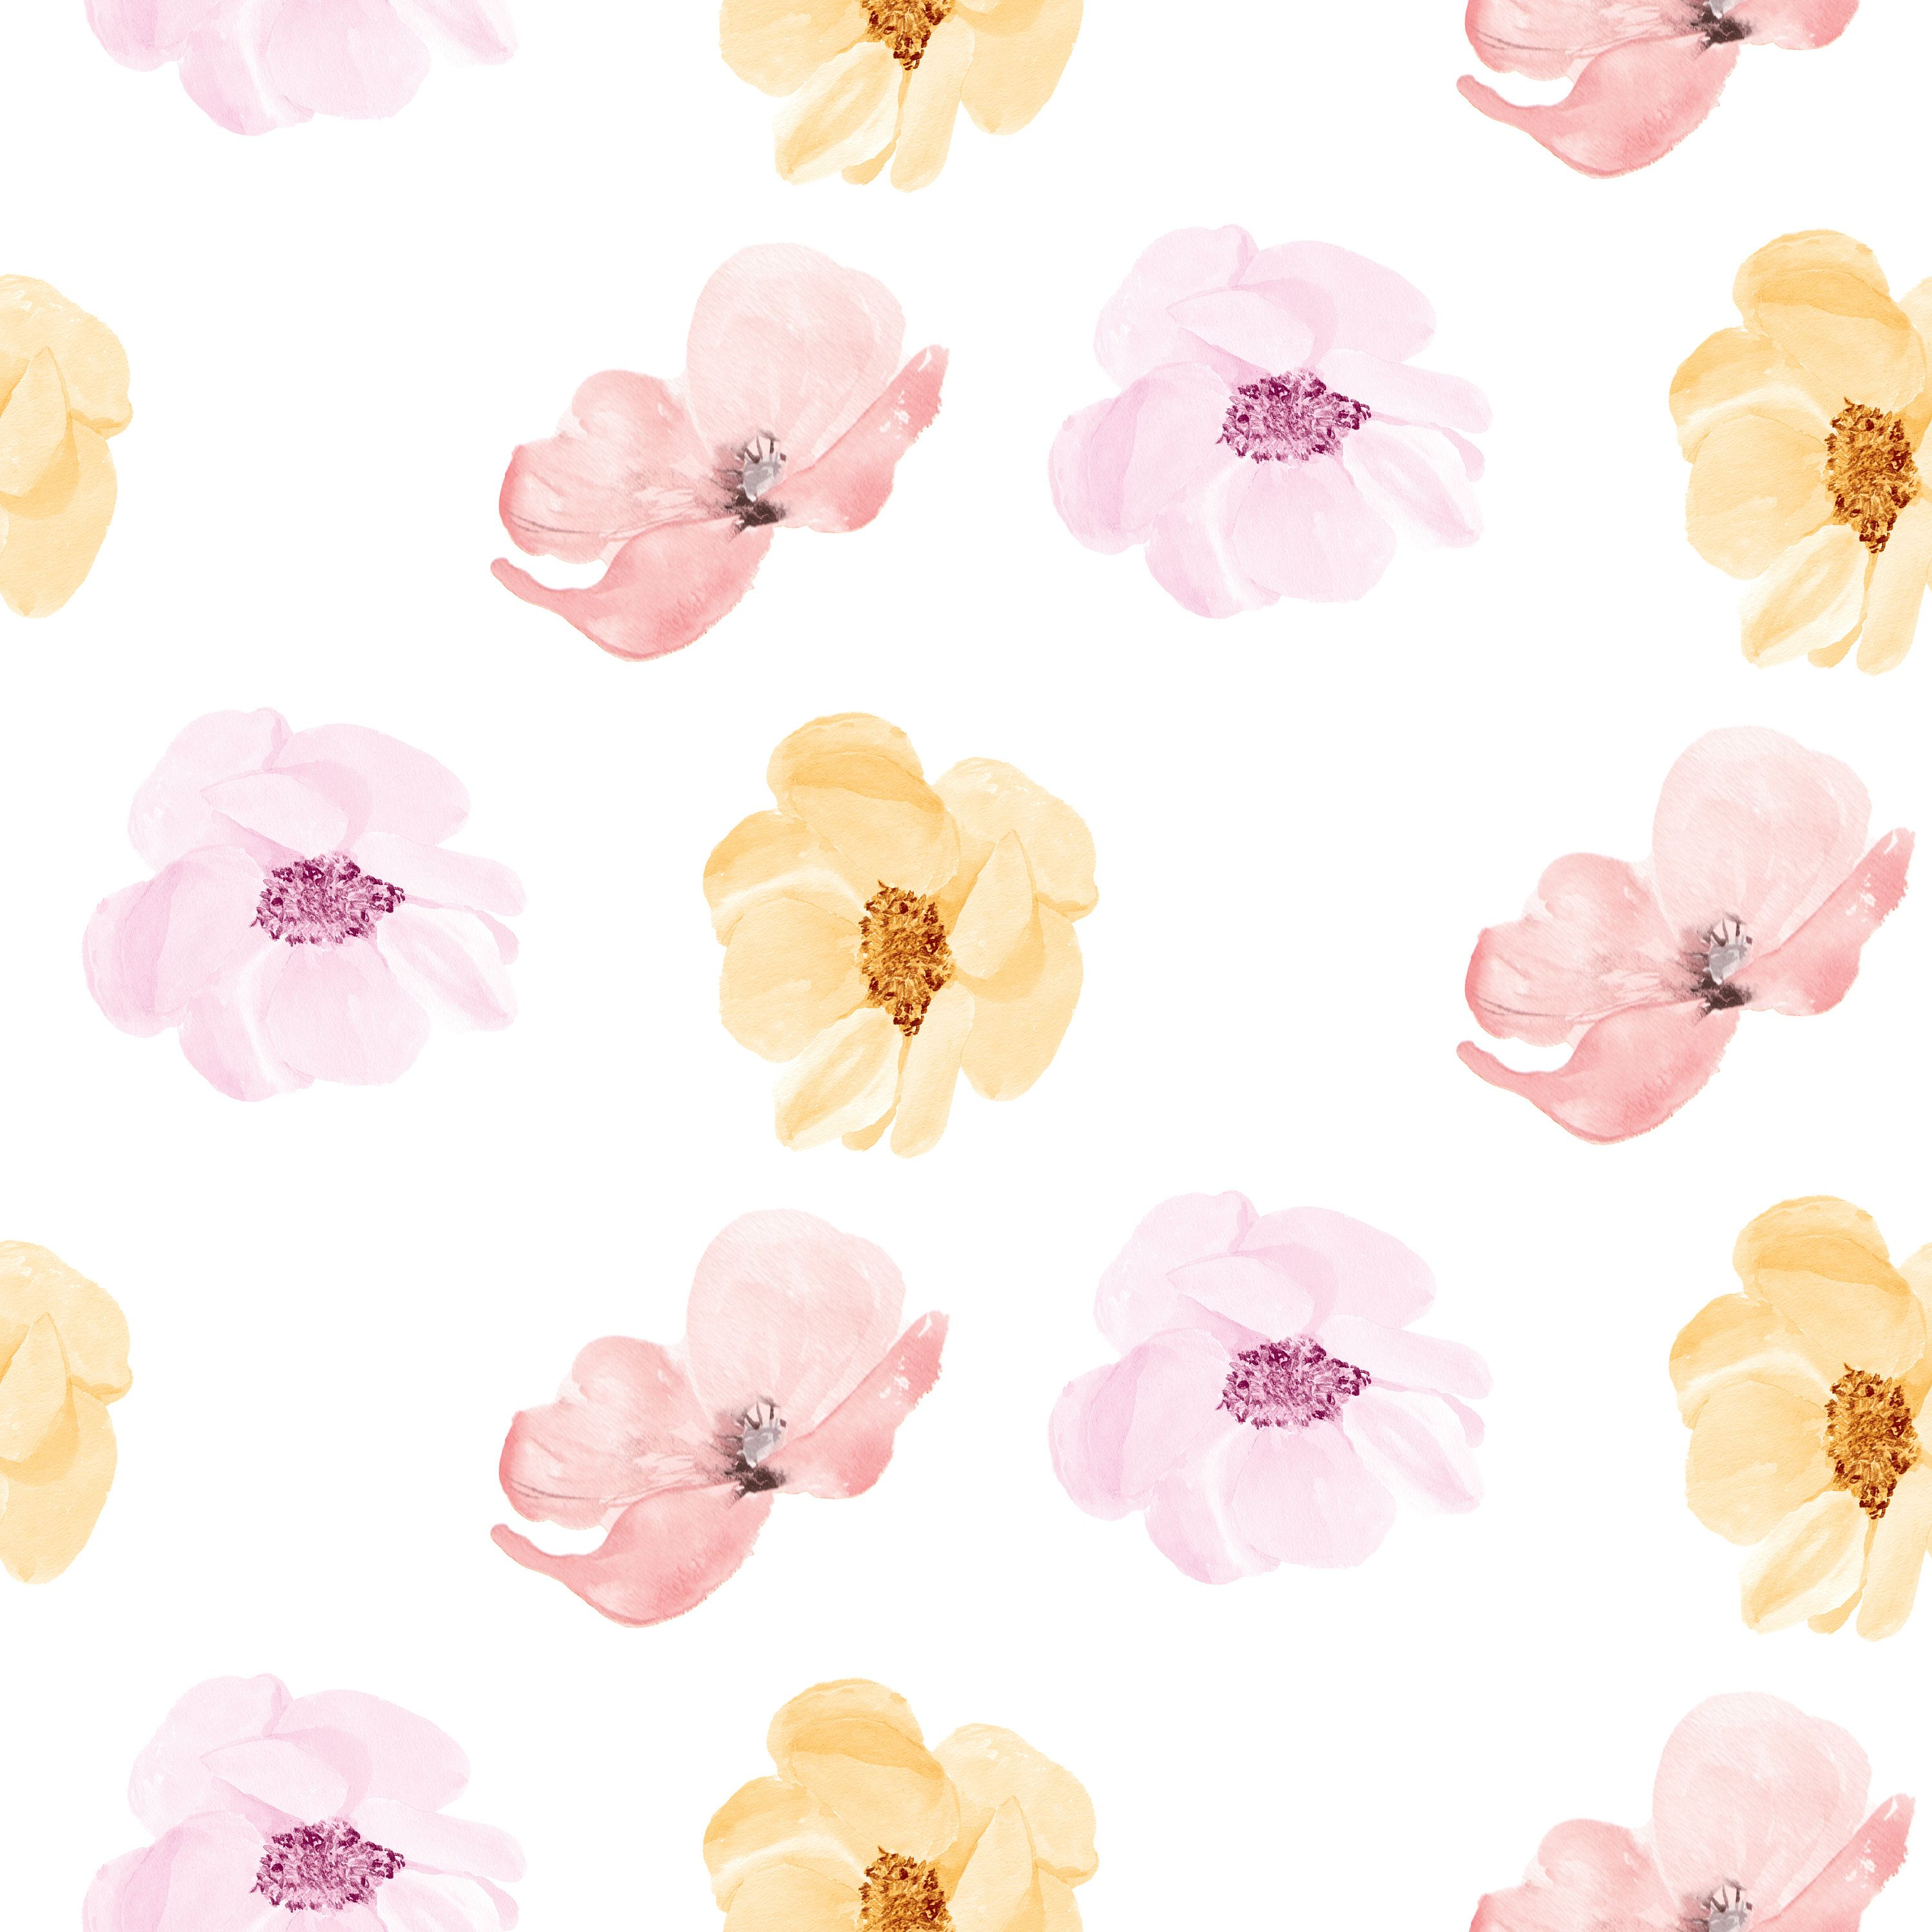 Watercolor Brushed Floral Garden Printed 100/% Cotton Quilting Fabric by the Yard